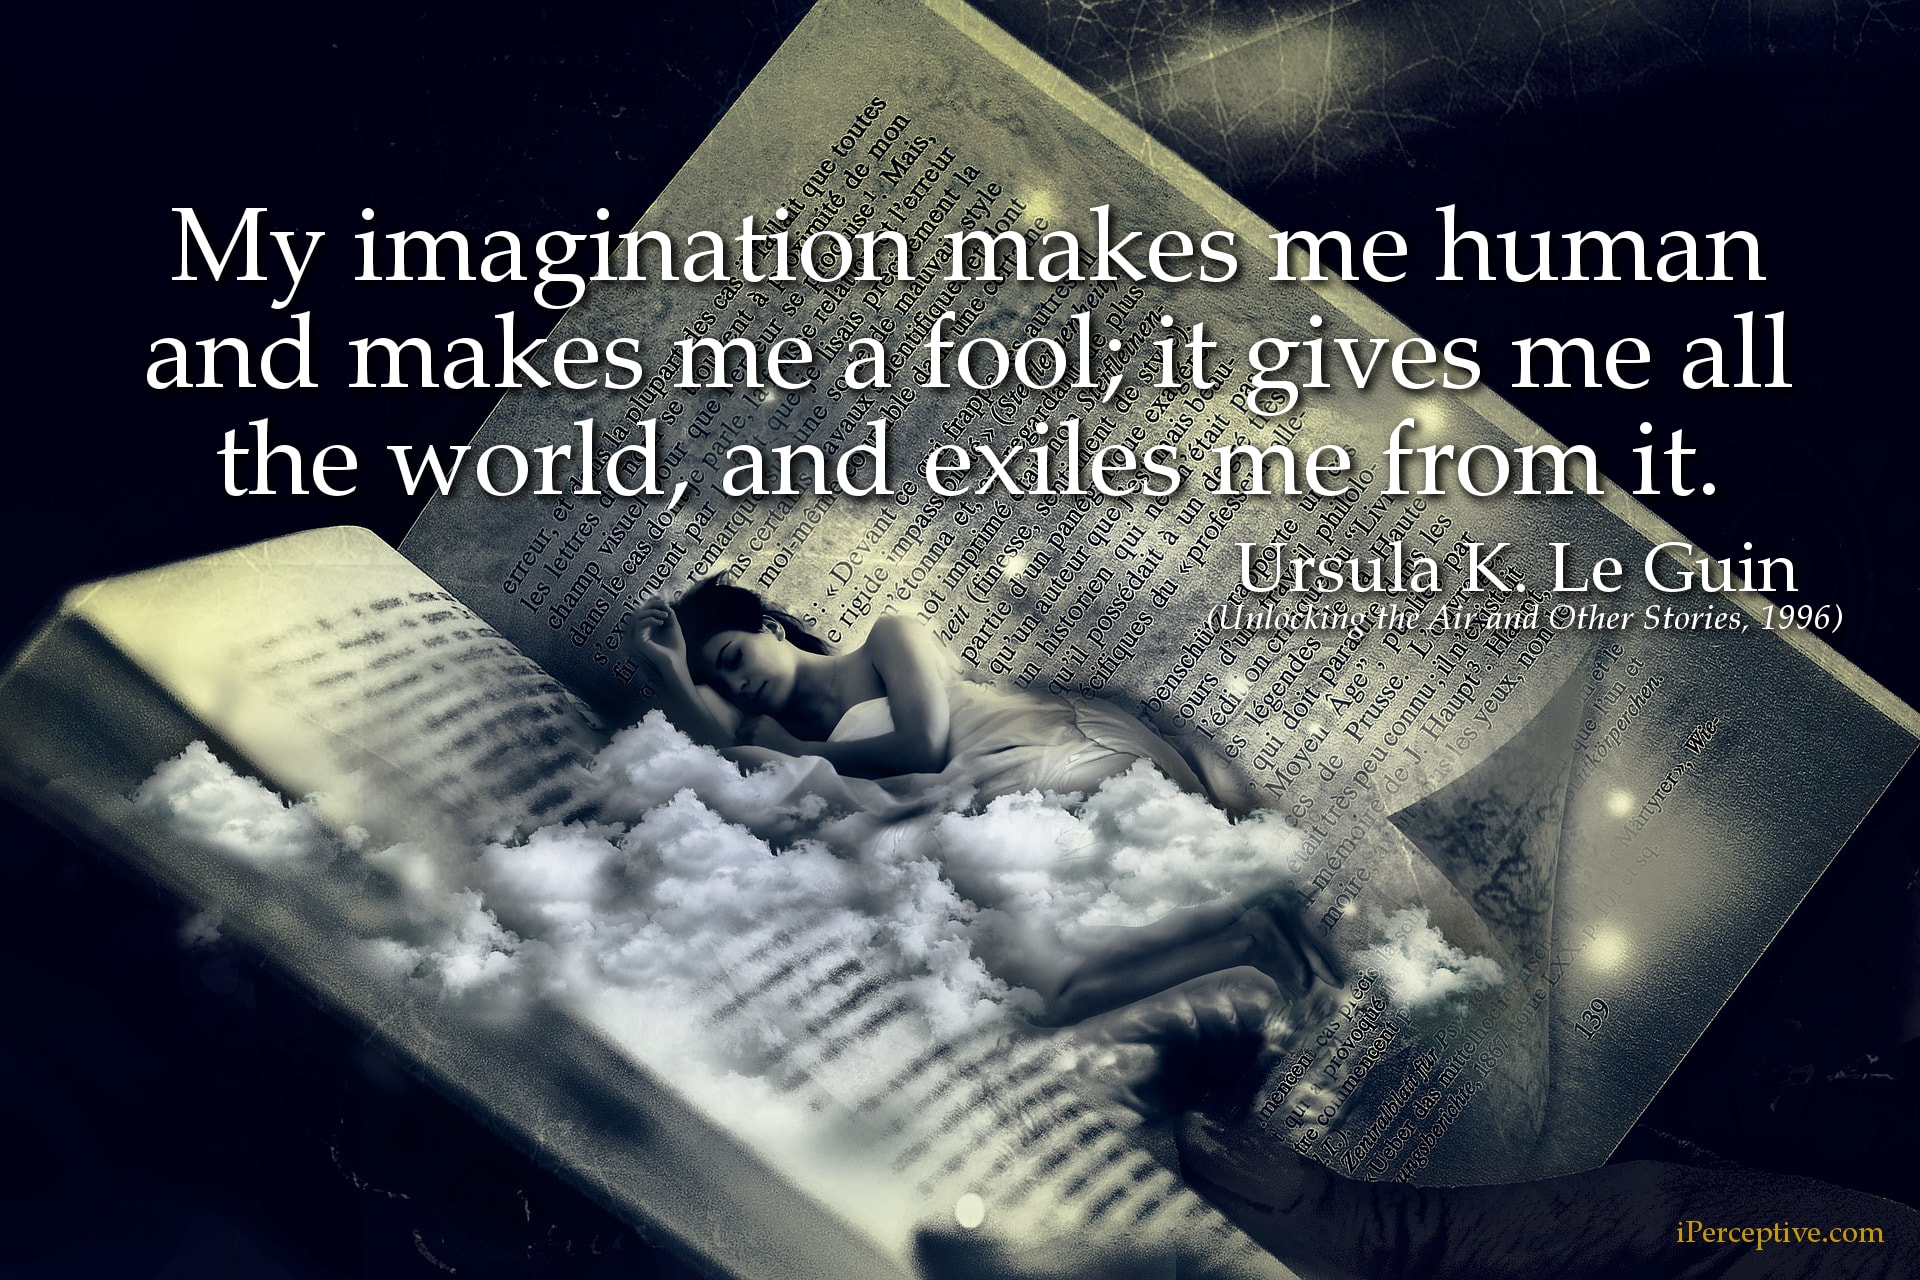 Ursula k. Le Guin Quote: My imagination makes me human and makes me a fool;...